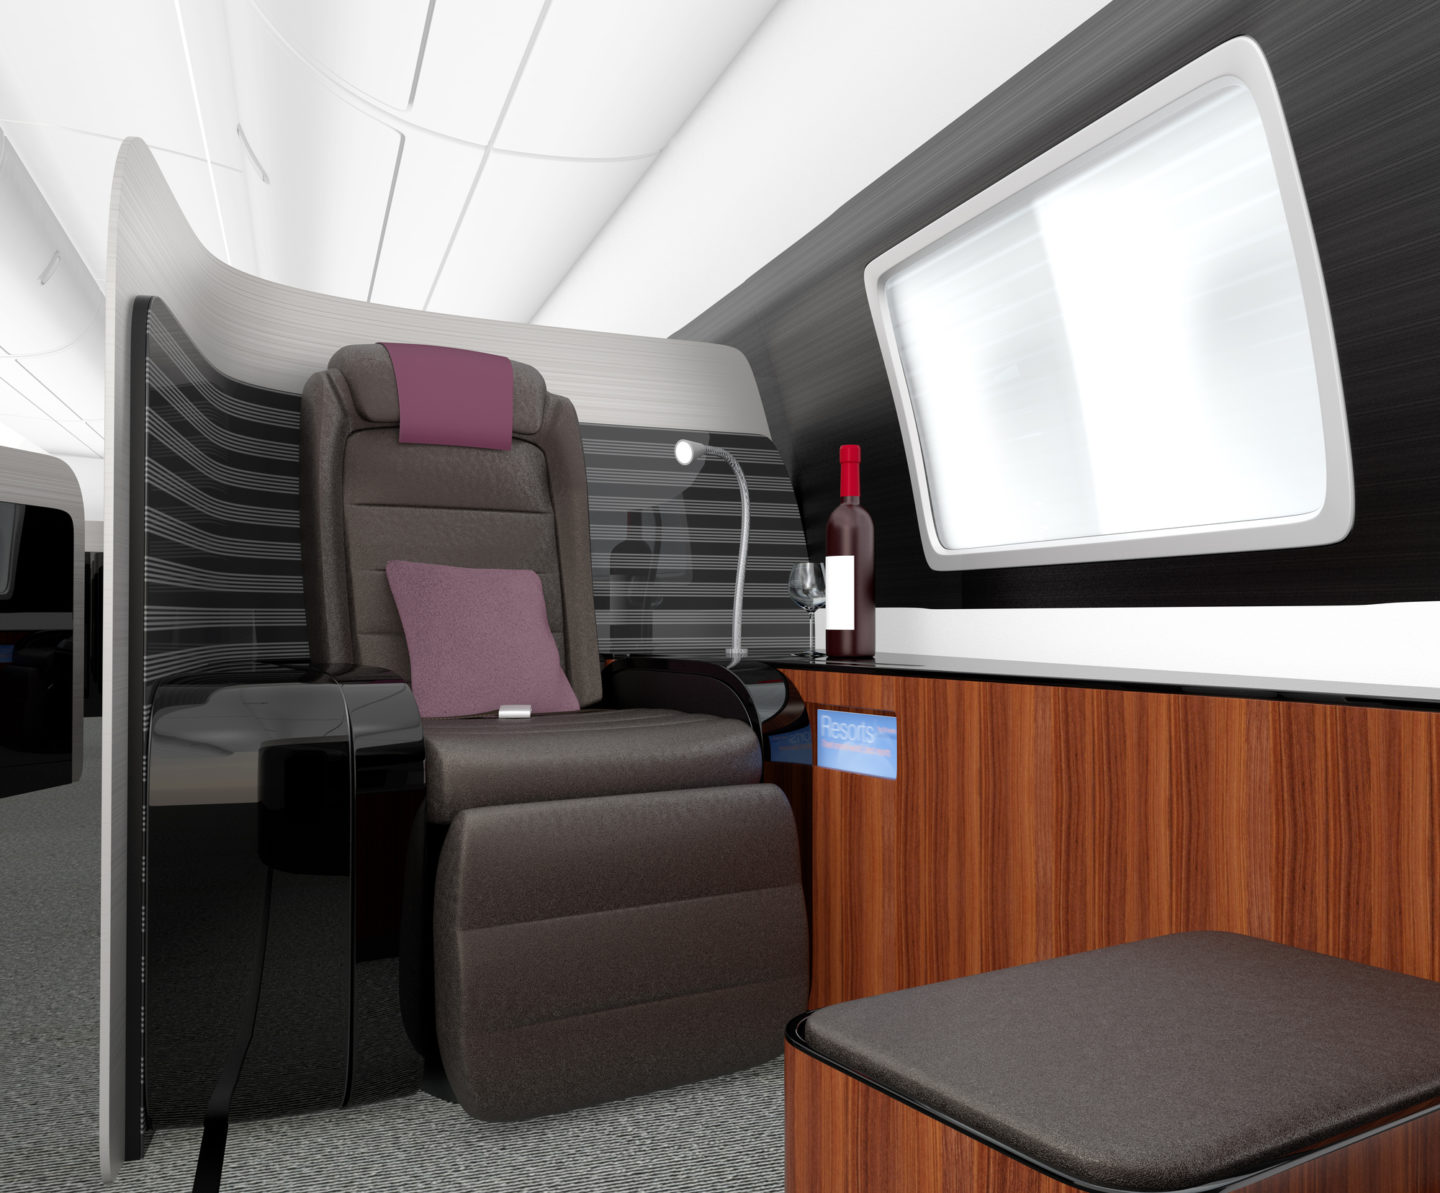 Business Class Vs First Class Flights Explained Compared 2020